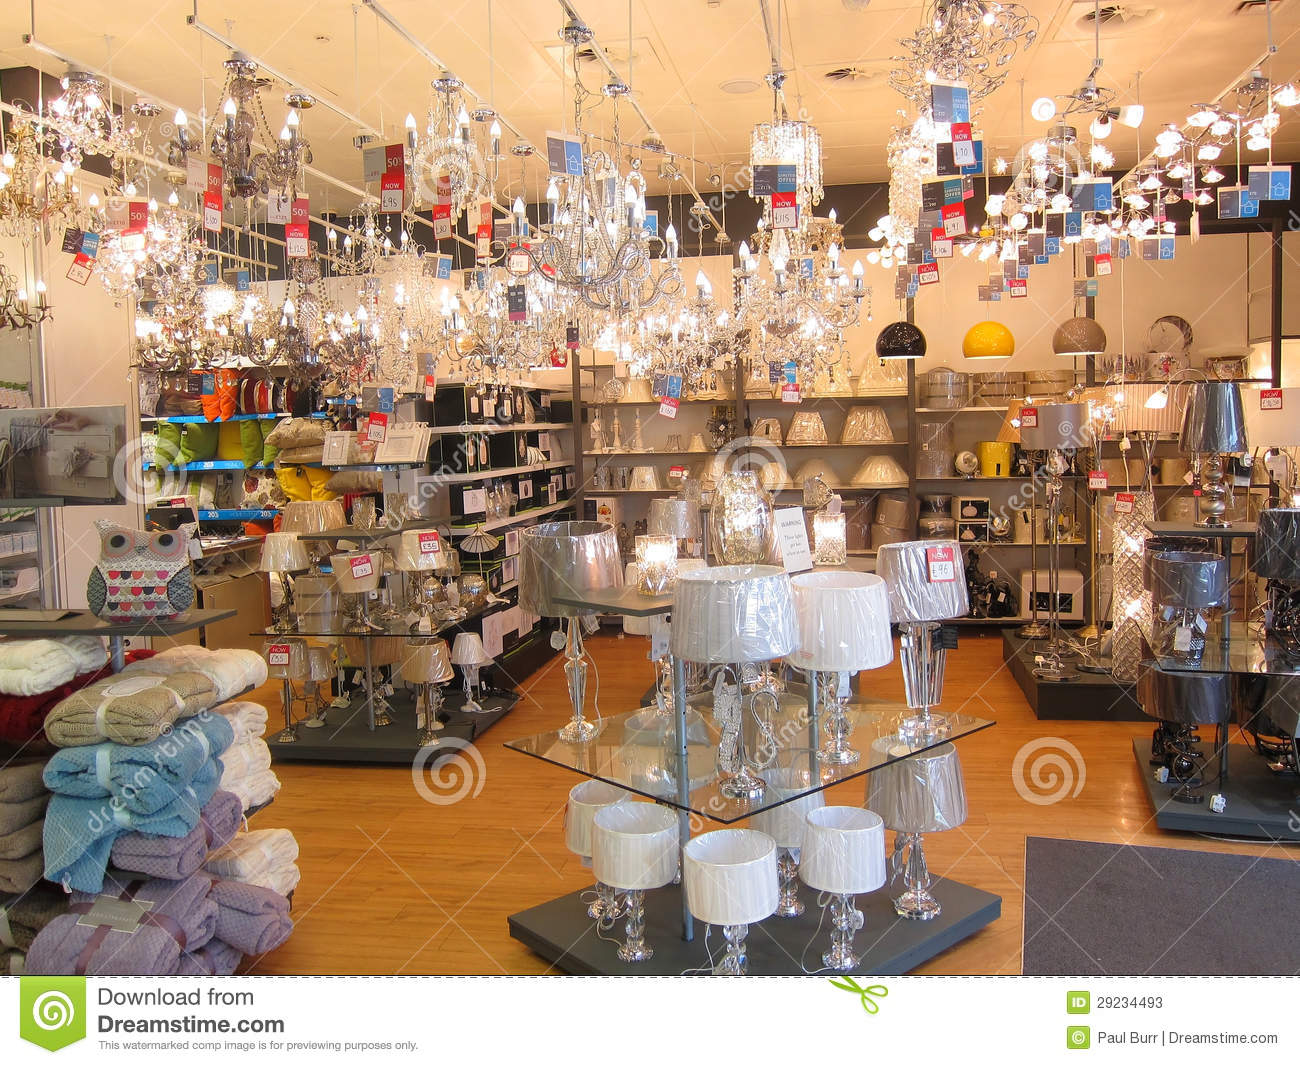 Lighting department in a store